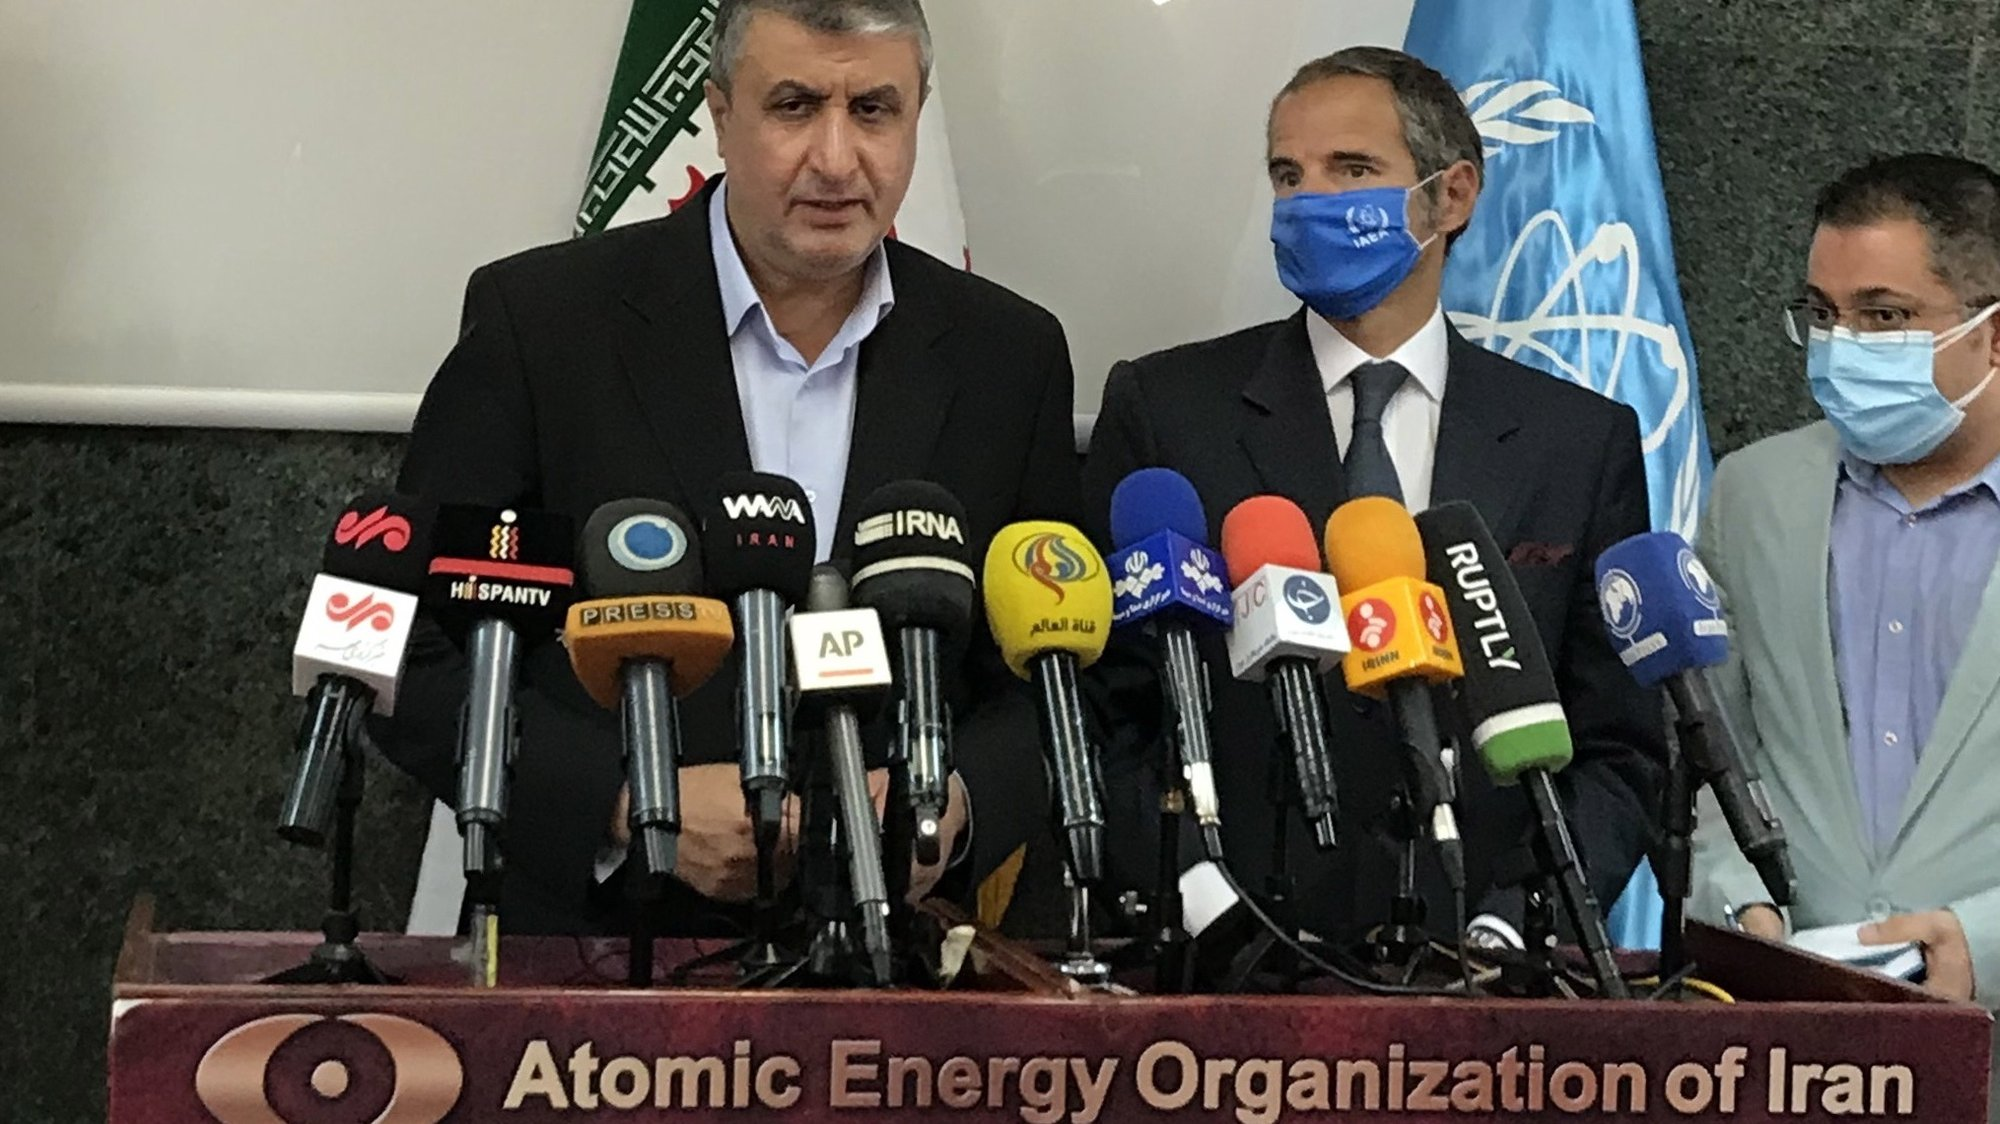 epa09463127 A handout picture made available by the Iran Atomic Organization official website (aeoi) shows, Iranian Atomic Organization chief Mohammad Eslami (L)and Rafael Mariano Grossi (C), Director General of the International Atomic Energy Agency (IAEA) during a joint press conference in Tehran, Iran, 12 September 2021. Grossi is in Tehran to meet with Iranian officials.  EPA/AEOI HANDOUT  HANDOUT EDITORIAL USE ONLY/NO SALES